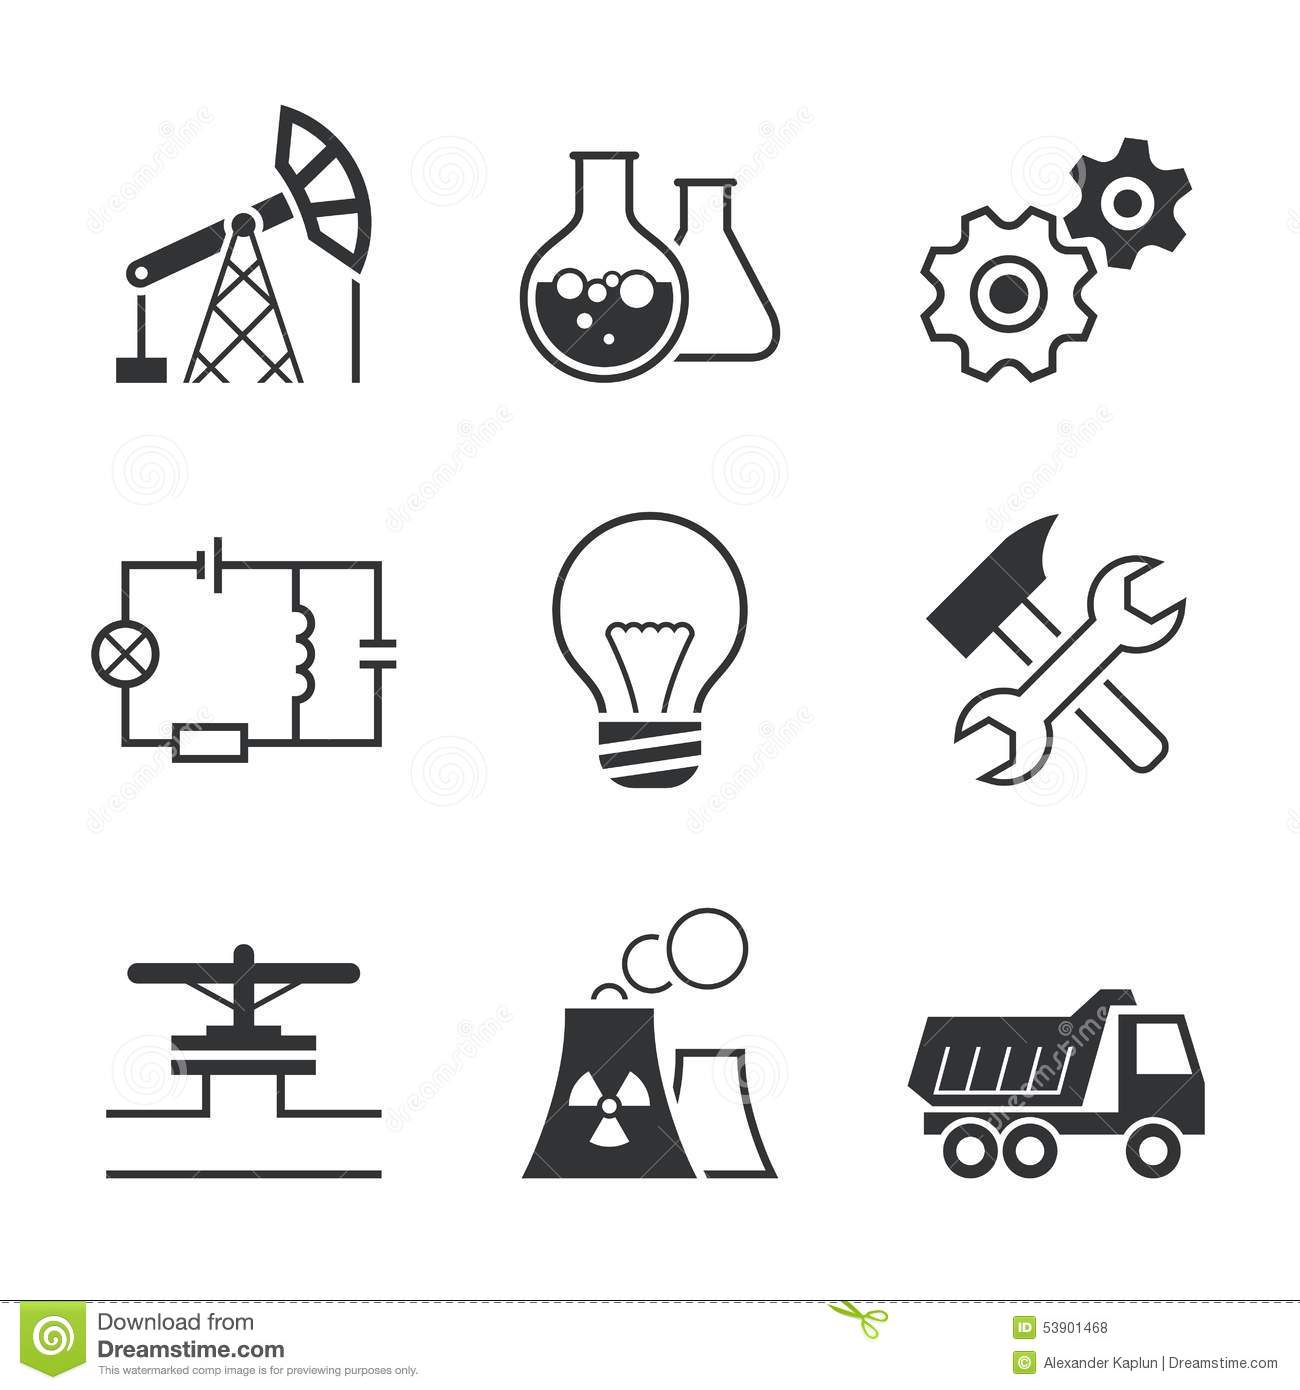 Stock Illustration Industry Simple Vector Icon Set Oil Extraction Chemistry Mechanics Electronics L  Assembling Pipe Line Factory Truck Image53901468 further Wasy I Kapelusze Komplet Wektor 38819239 furthermore Gerenciando Projetos   Scrum besides Dauerhafter Unternehmenserfolg Mit Agile Evolution besides Tsql Fonksiyonlari. on scrum